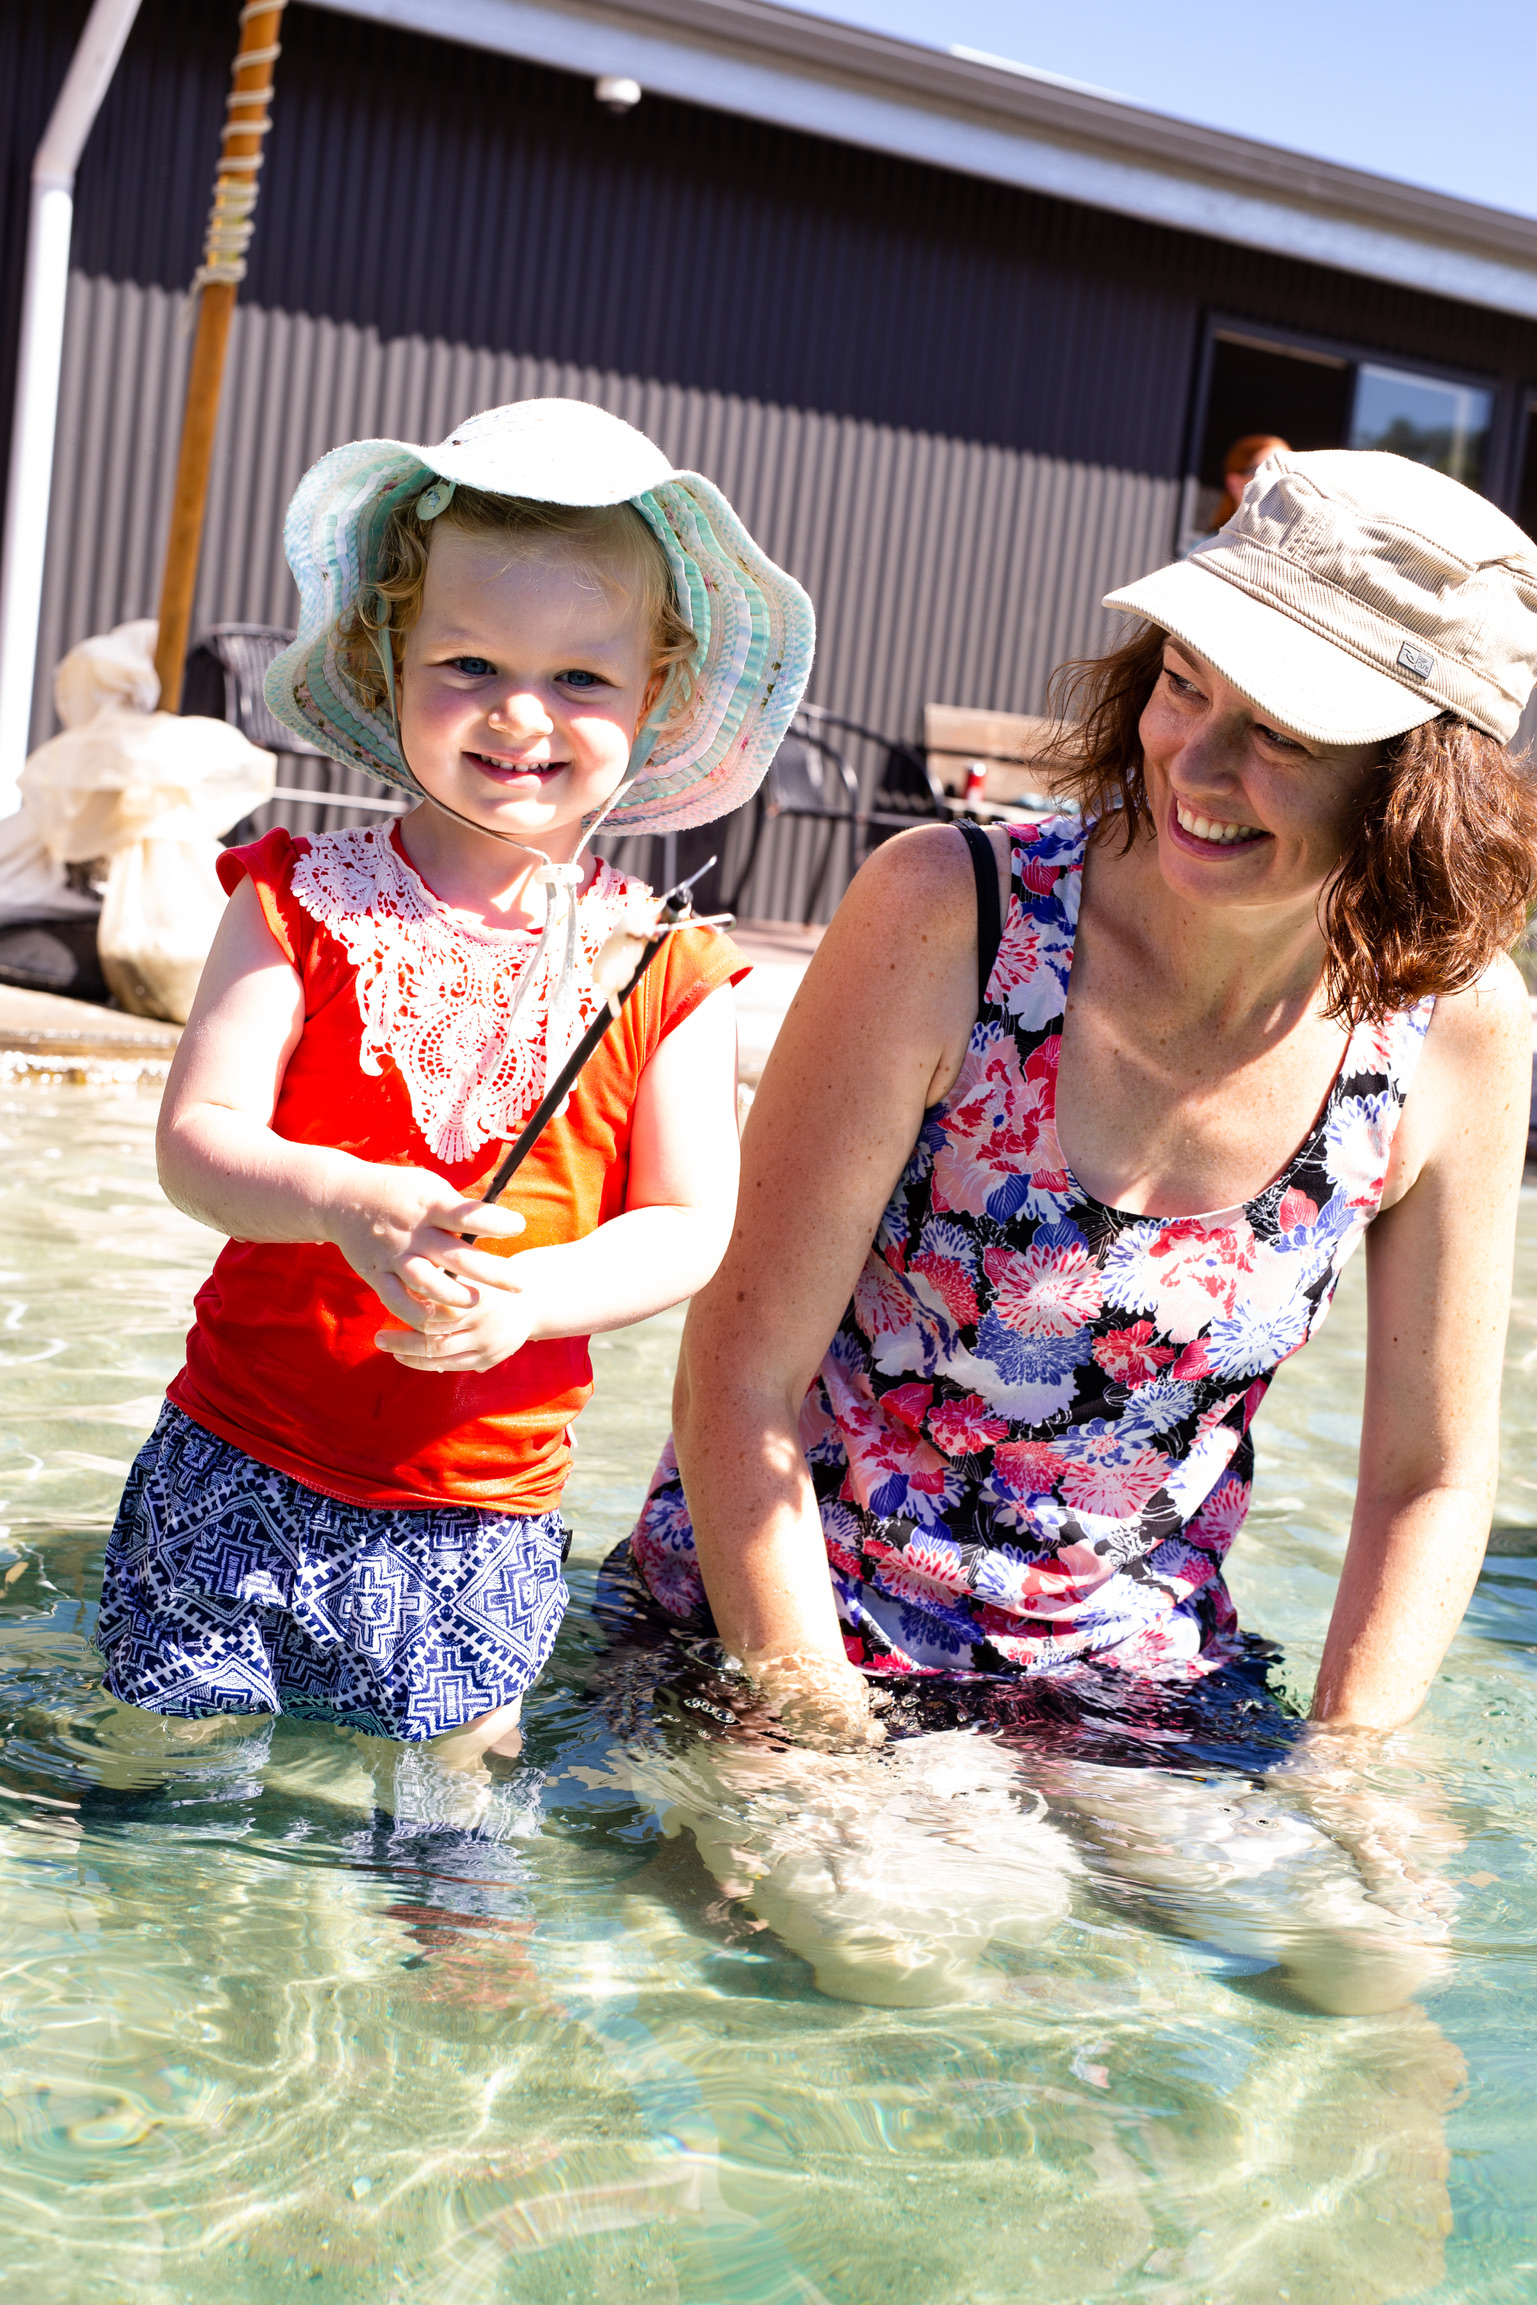 shark encounters for all ages in Port Stephens